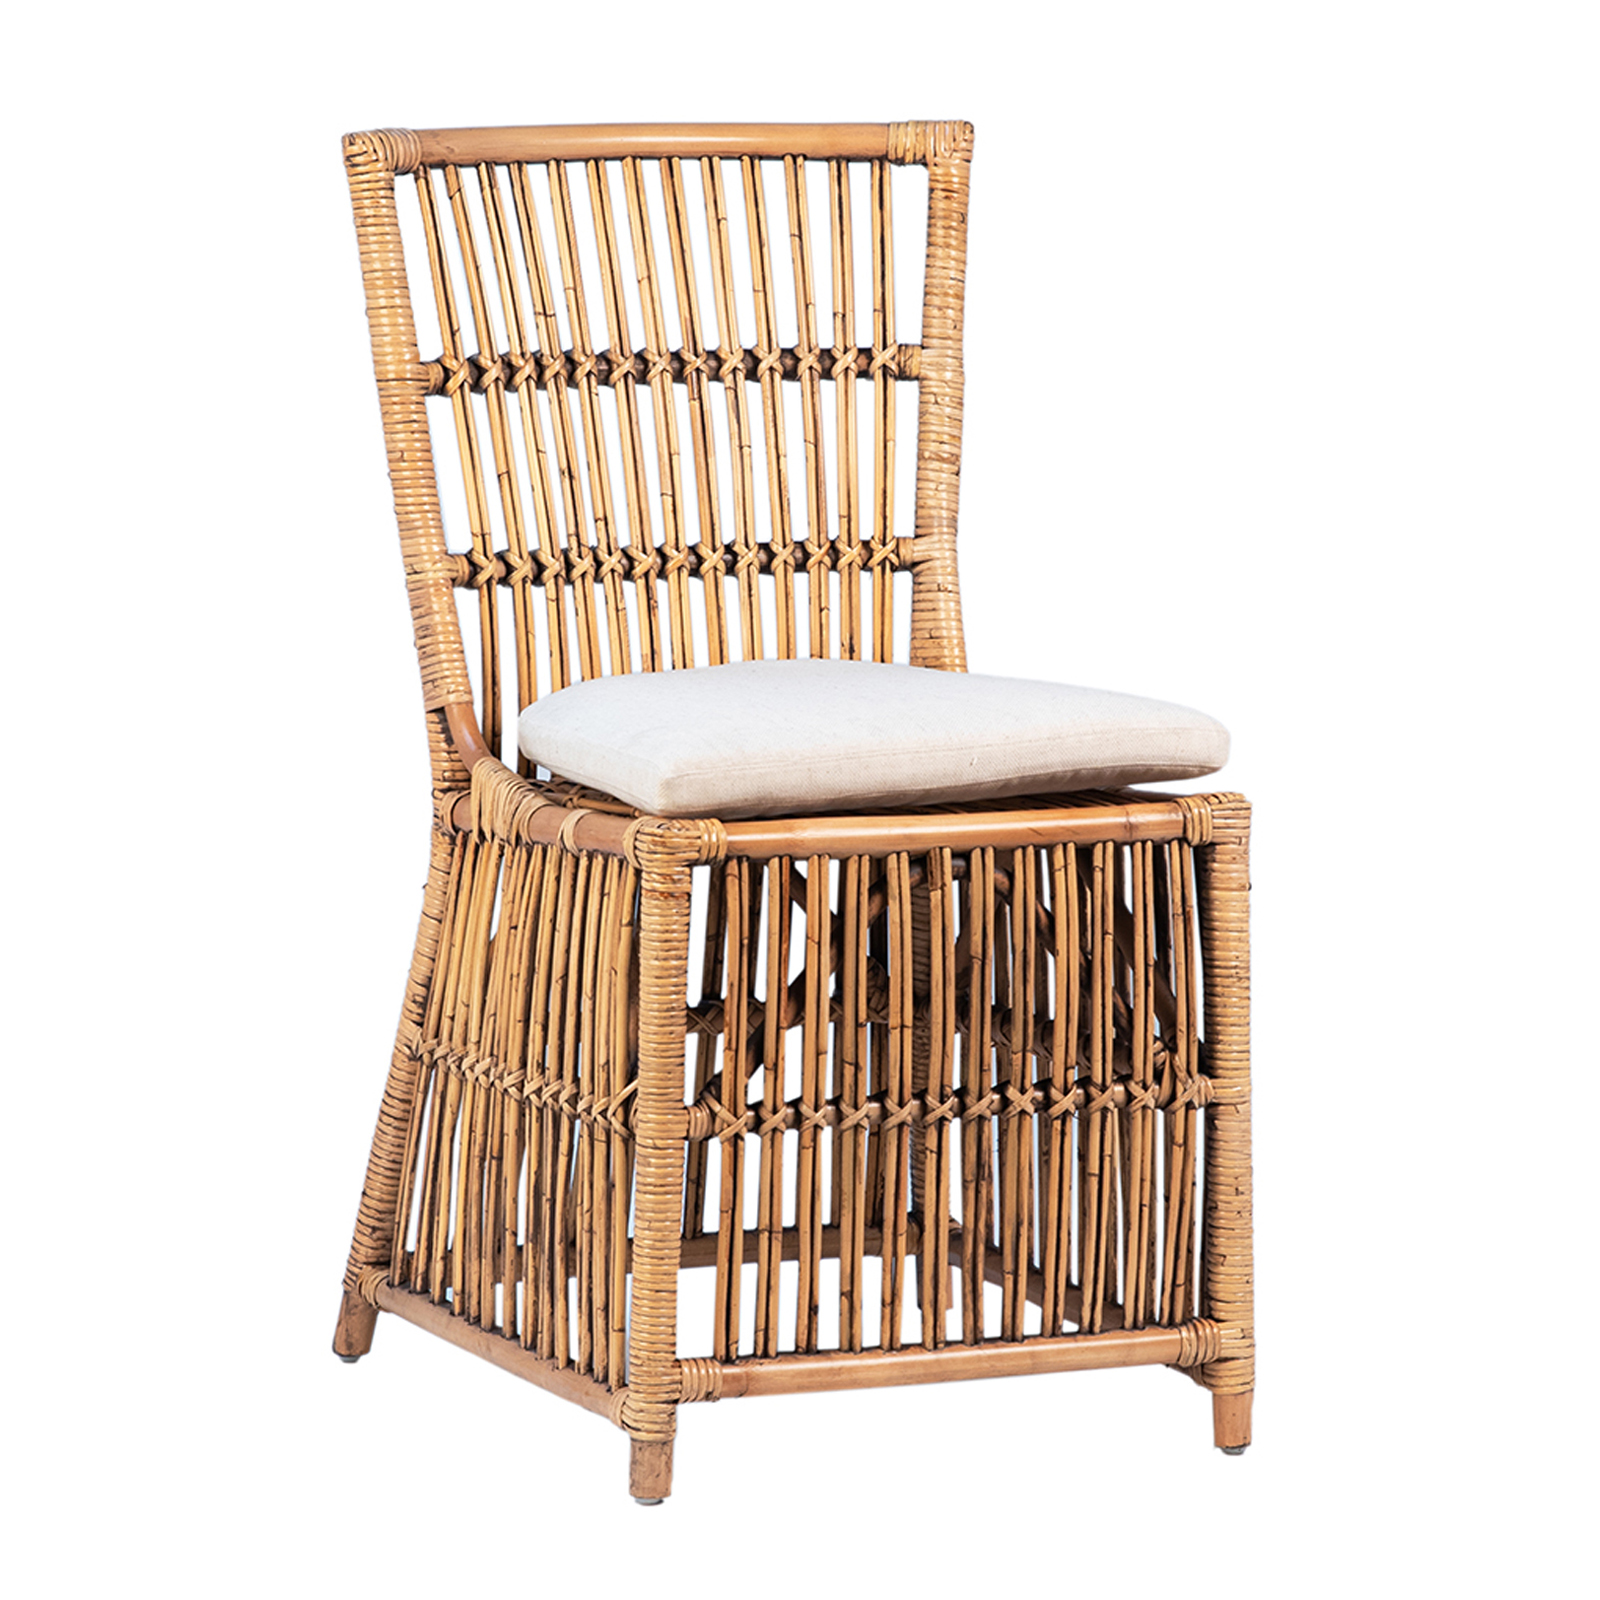 Bamboo Rattan Dining Chair Furniture Design Mix Gallery